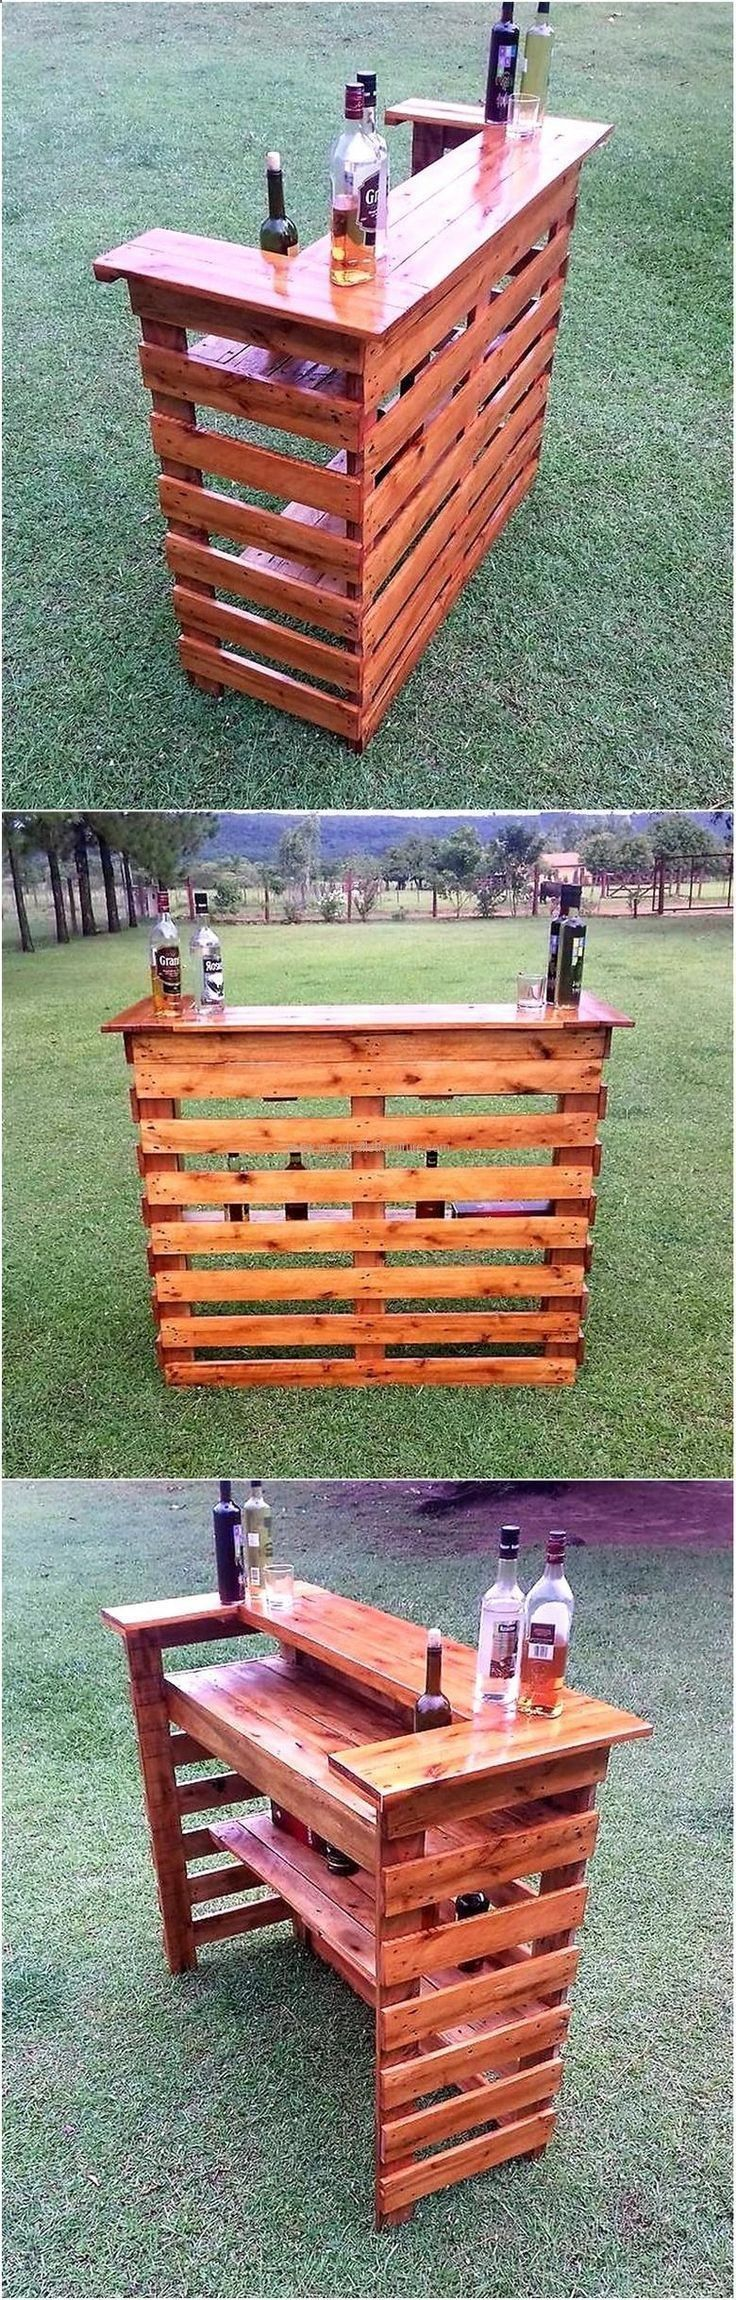 Wood Profits - upcycled wood pallet bar. Tons of different projects for all parts of the house. really inspired for my future home. easy diys. Discover How You Can Start A Woodworking Business From Home Easily in 7 Days With NO Capital Needed!